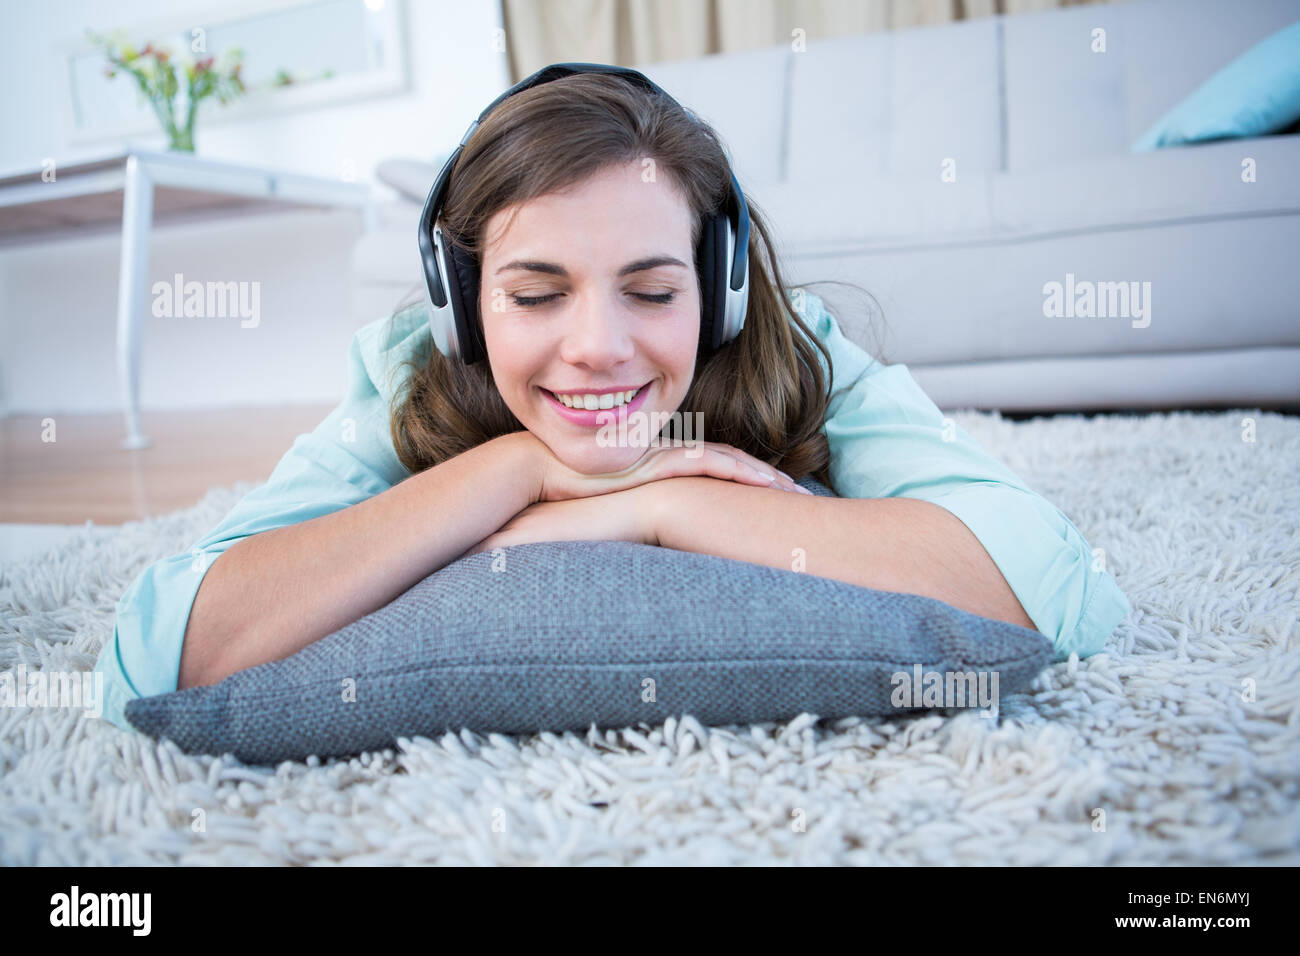 Peaceful woman listening musing lying on the floor - Stock Image